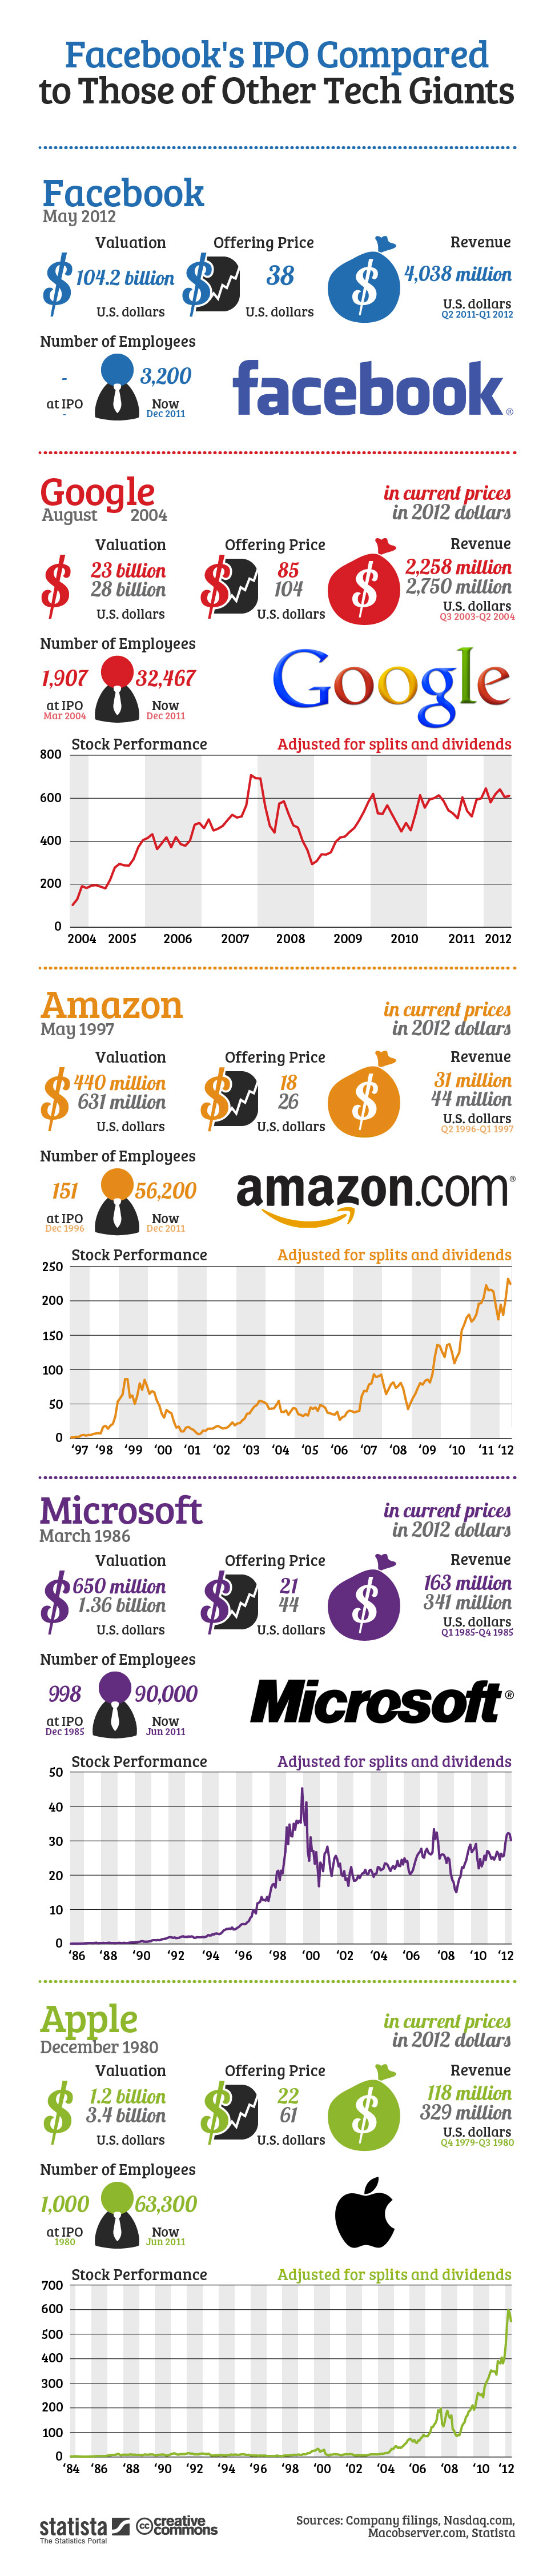 Infographic: Facebook's IPO Compared to Those of Other Tech Giants | Statista